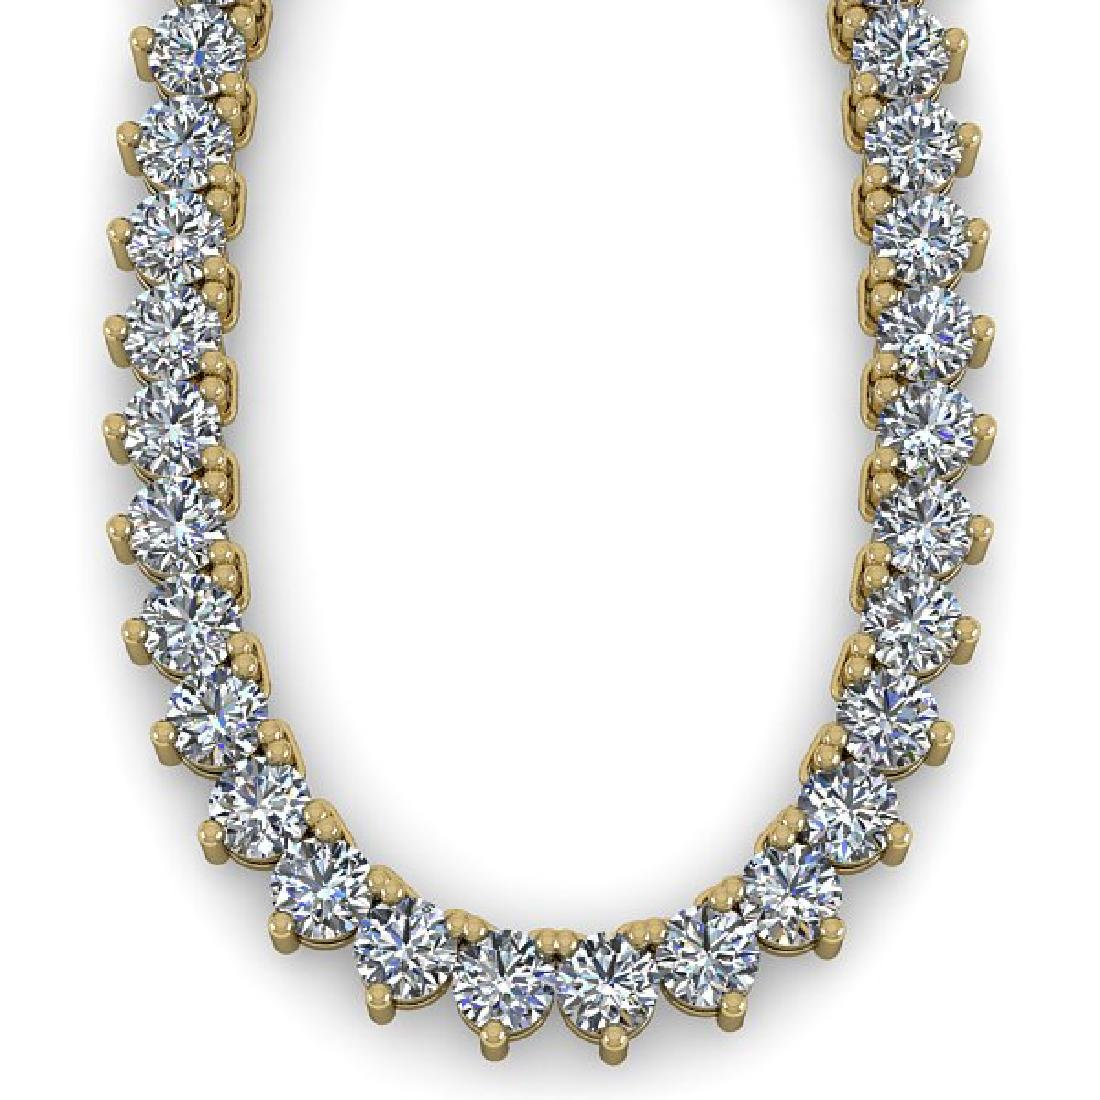 33 CTW Solitaire SI Diamond Necklace 14K Yellow Gold - 2